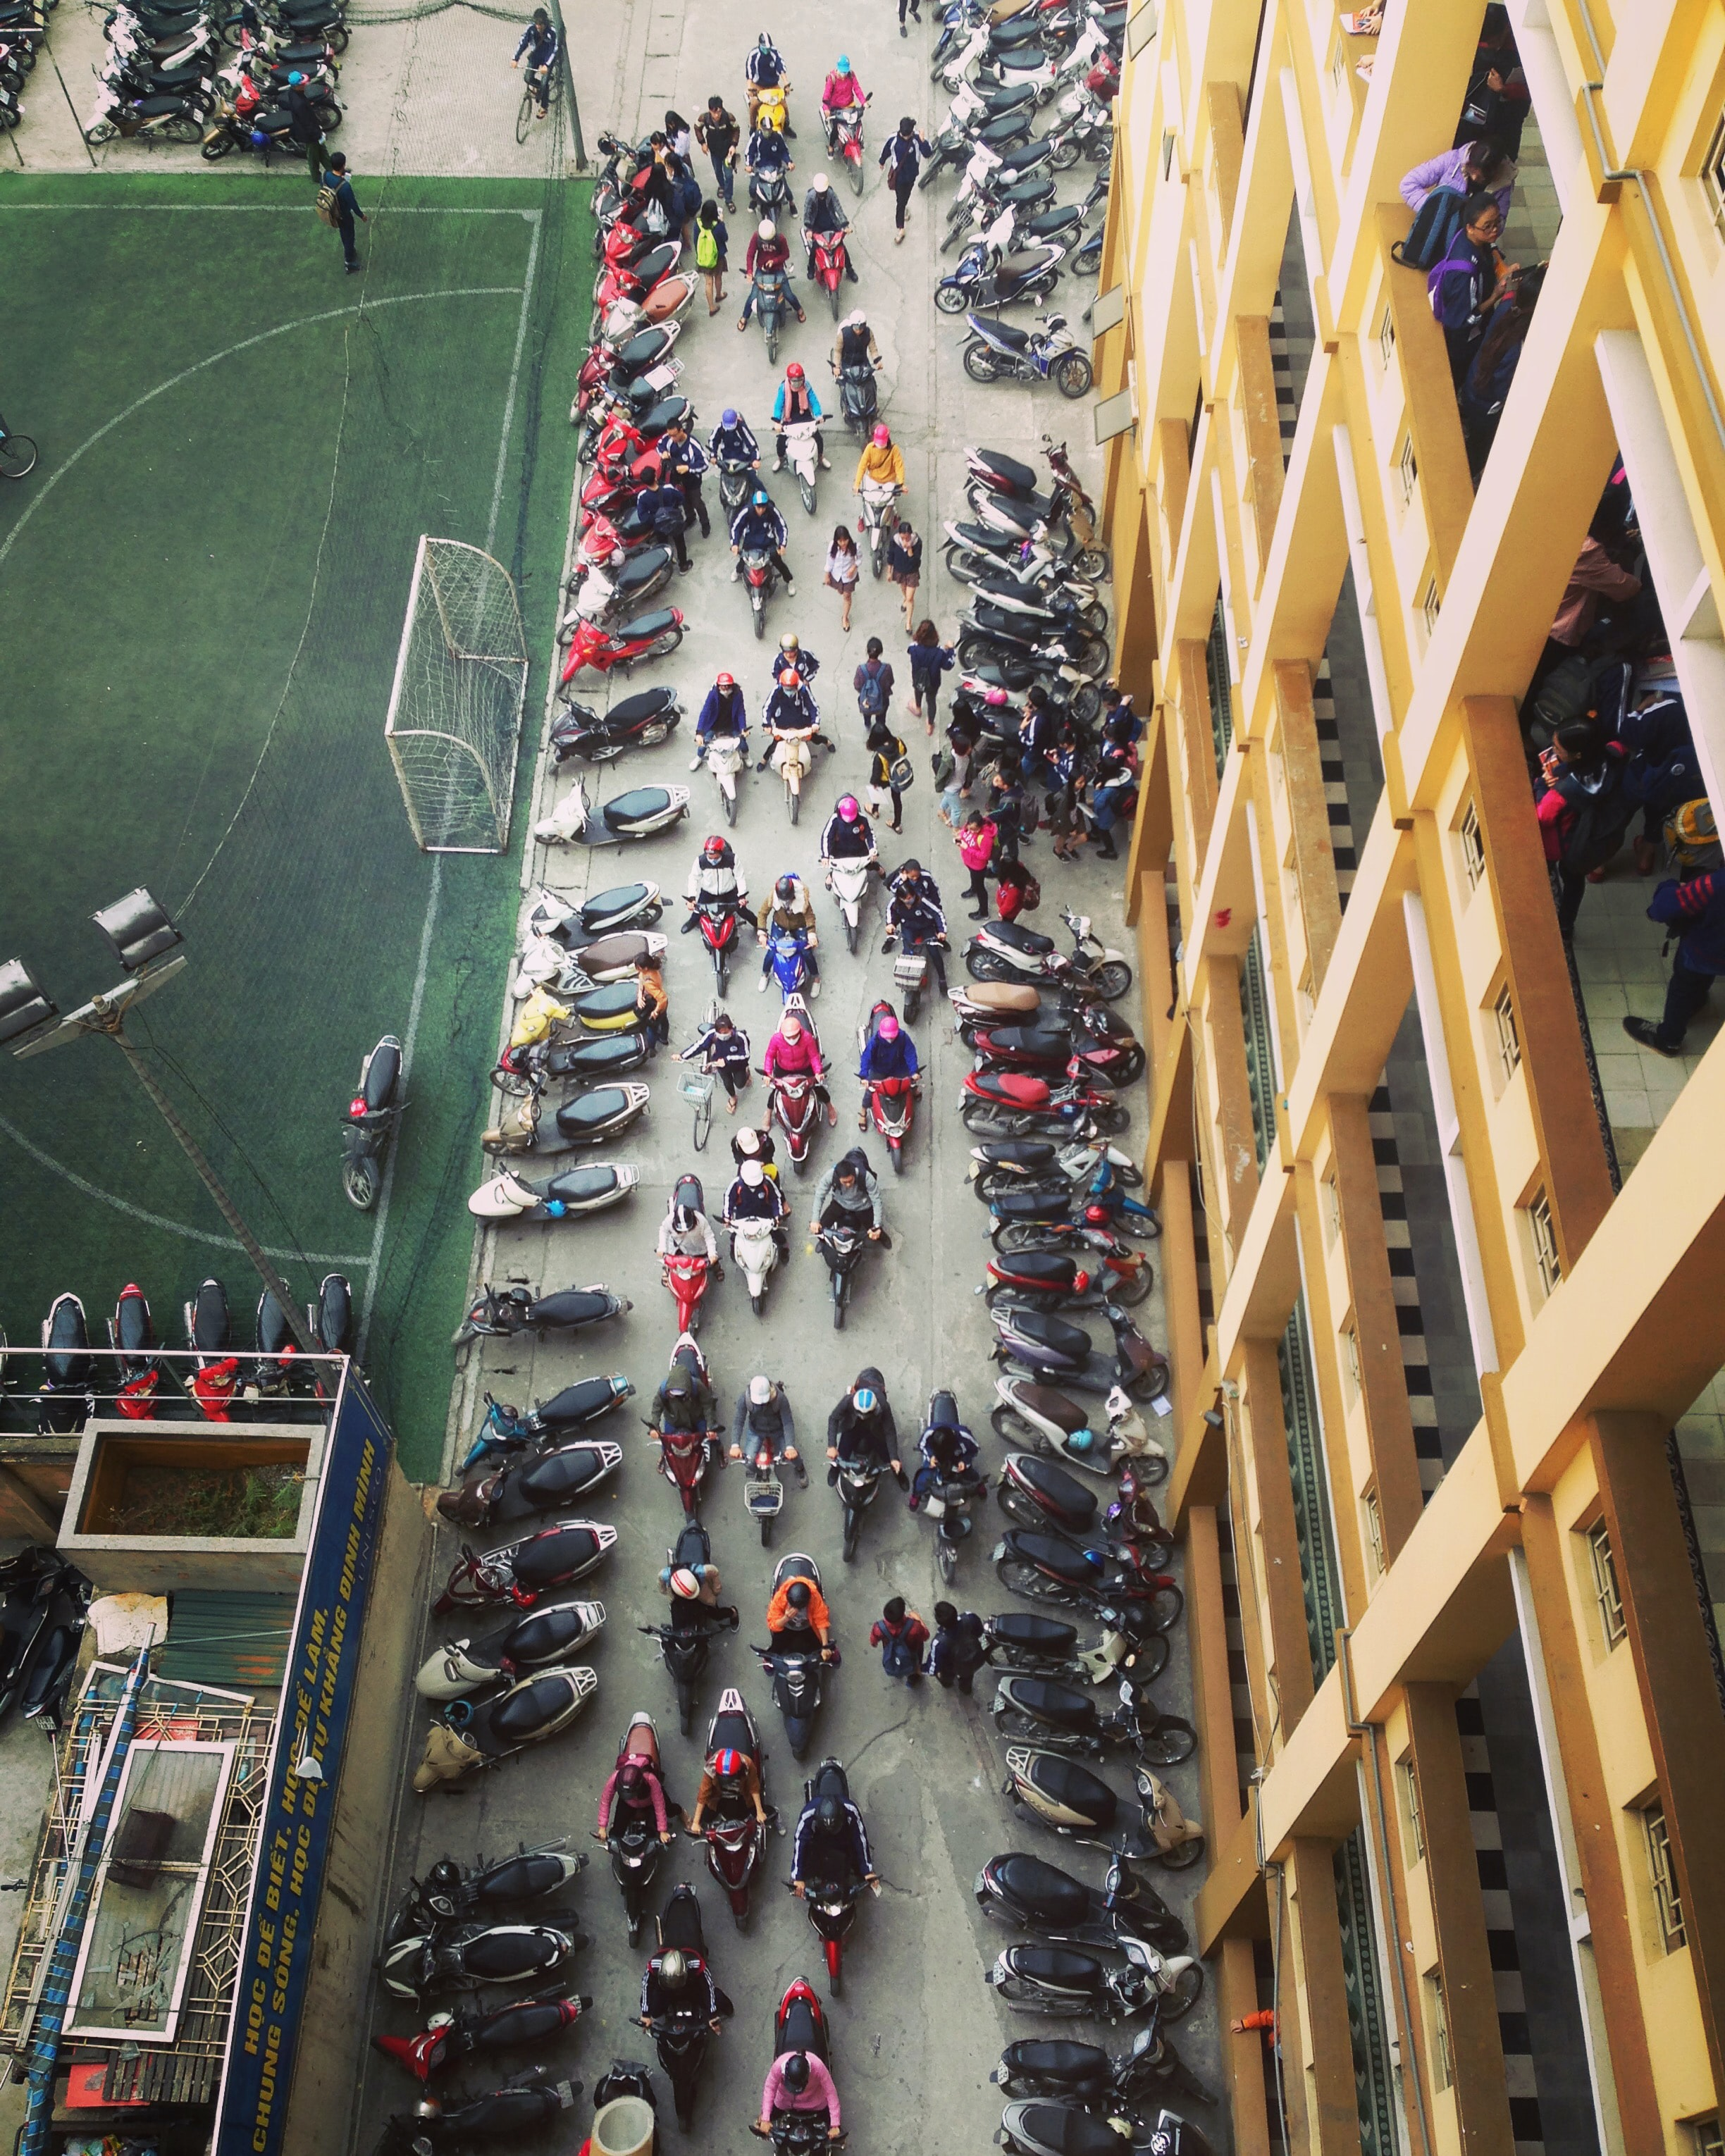 bird's-eye view photo of row of motorcycles on road